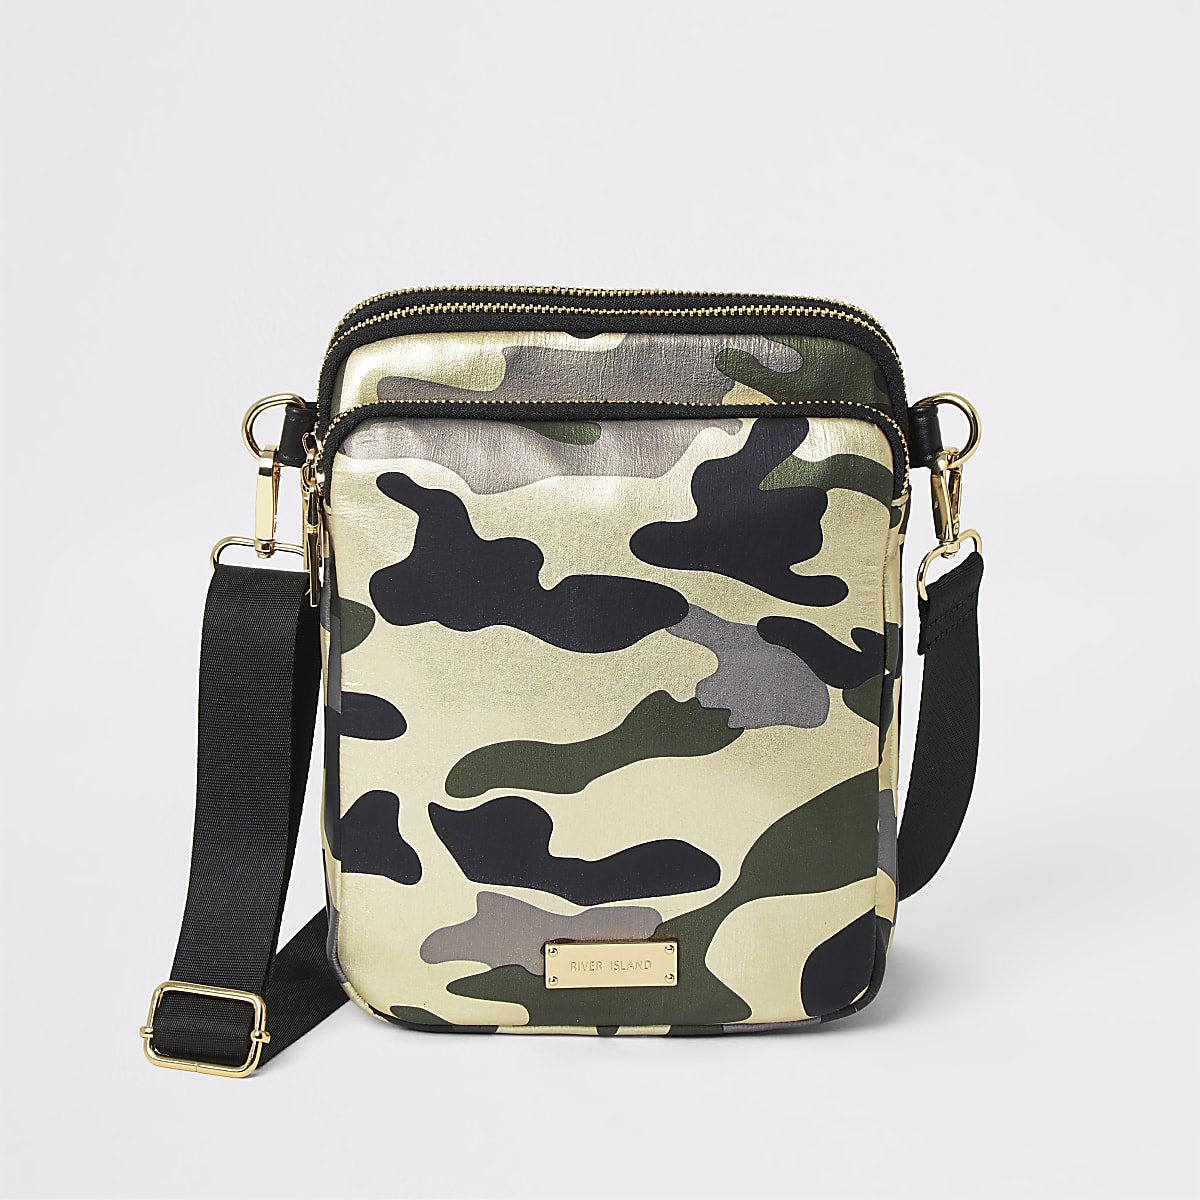 Dark green camo cross body flight bag